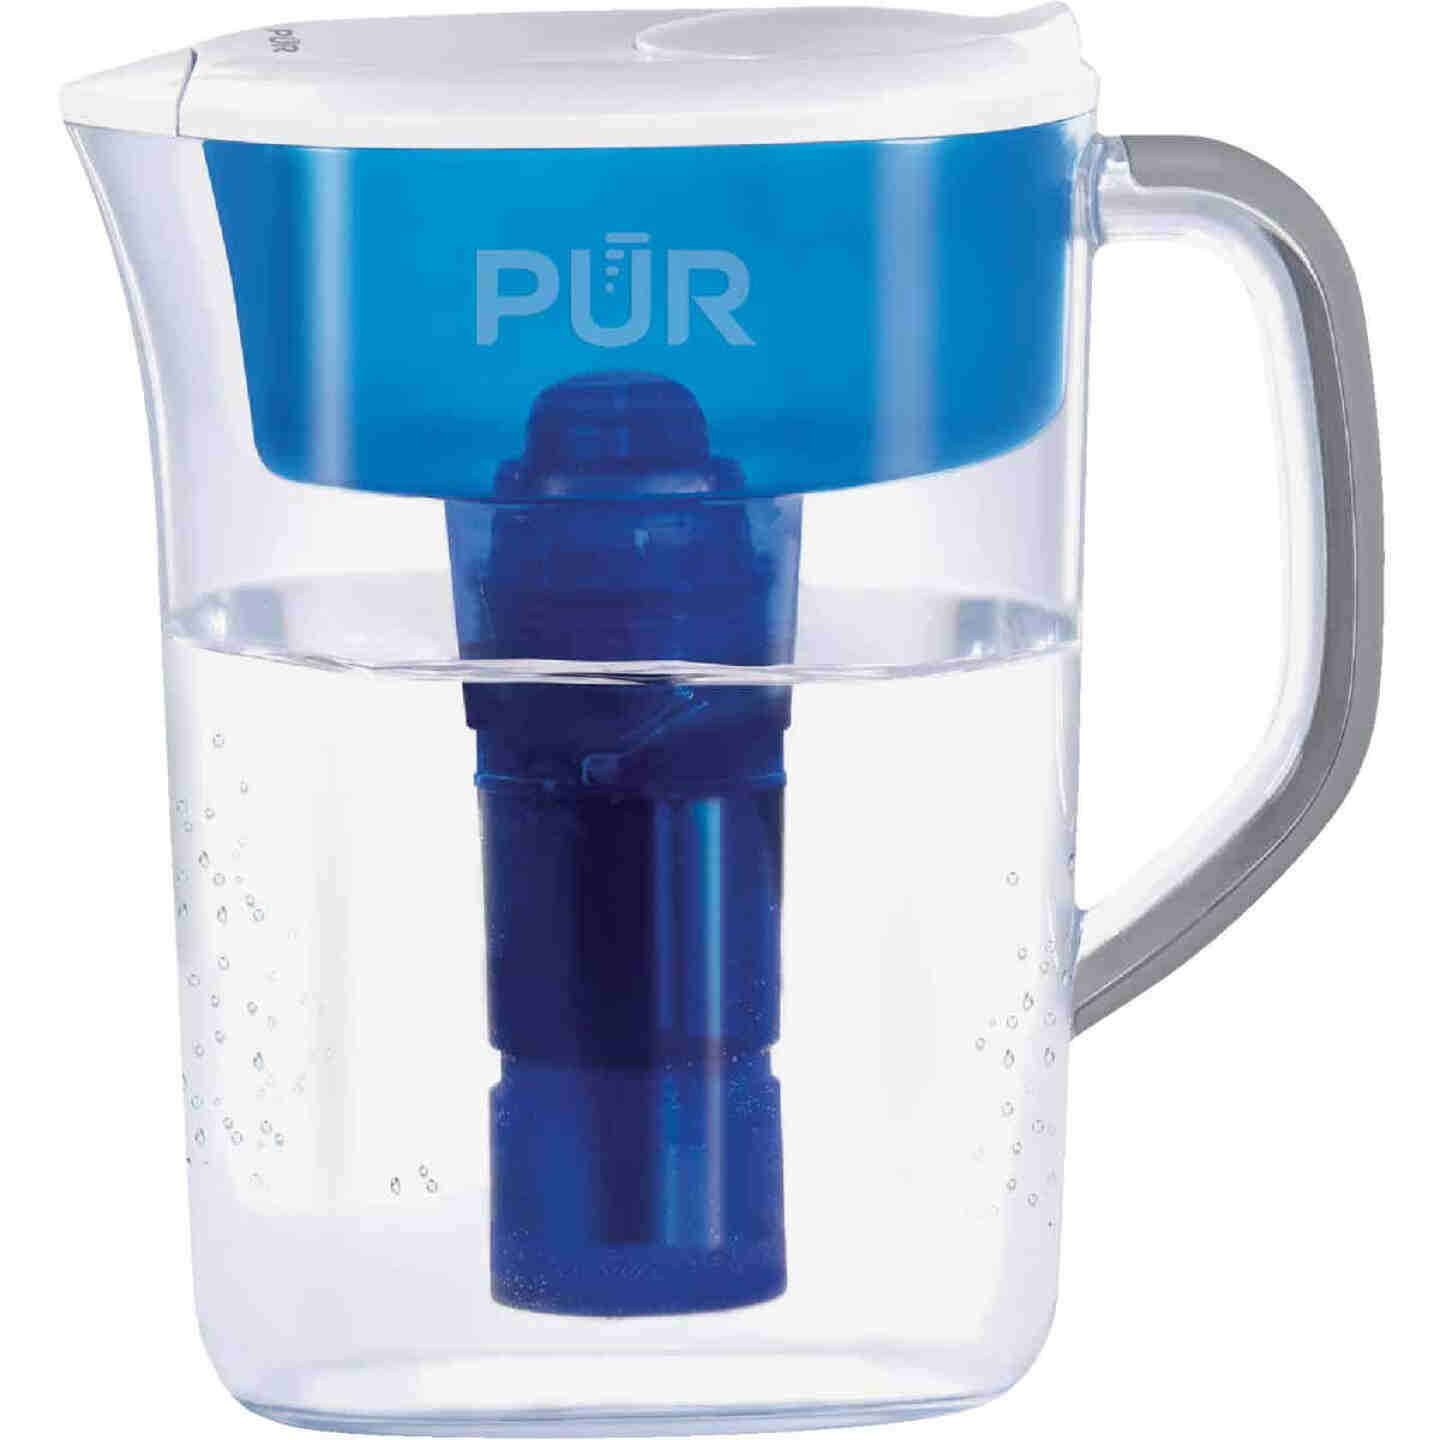 Pur 7-Cup Water Filter Pitcher, Blue Image 1